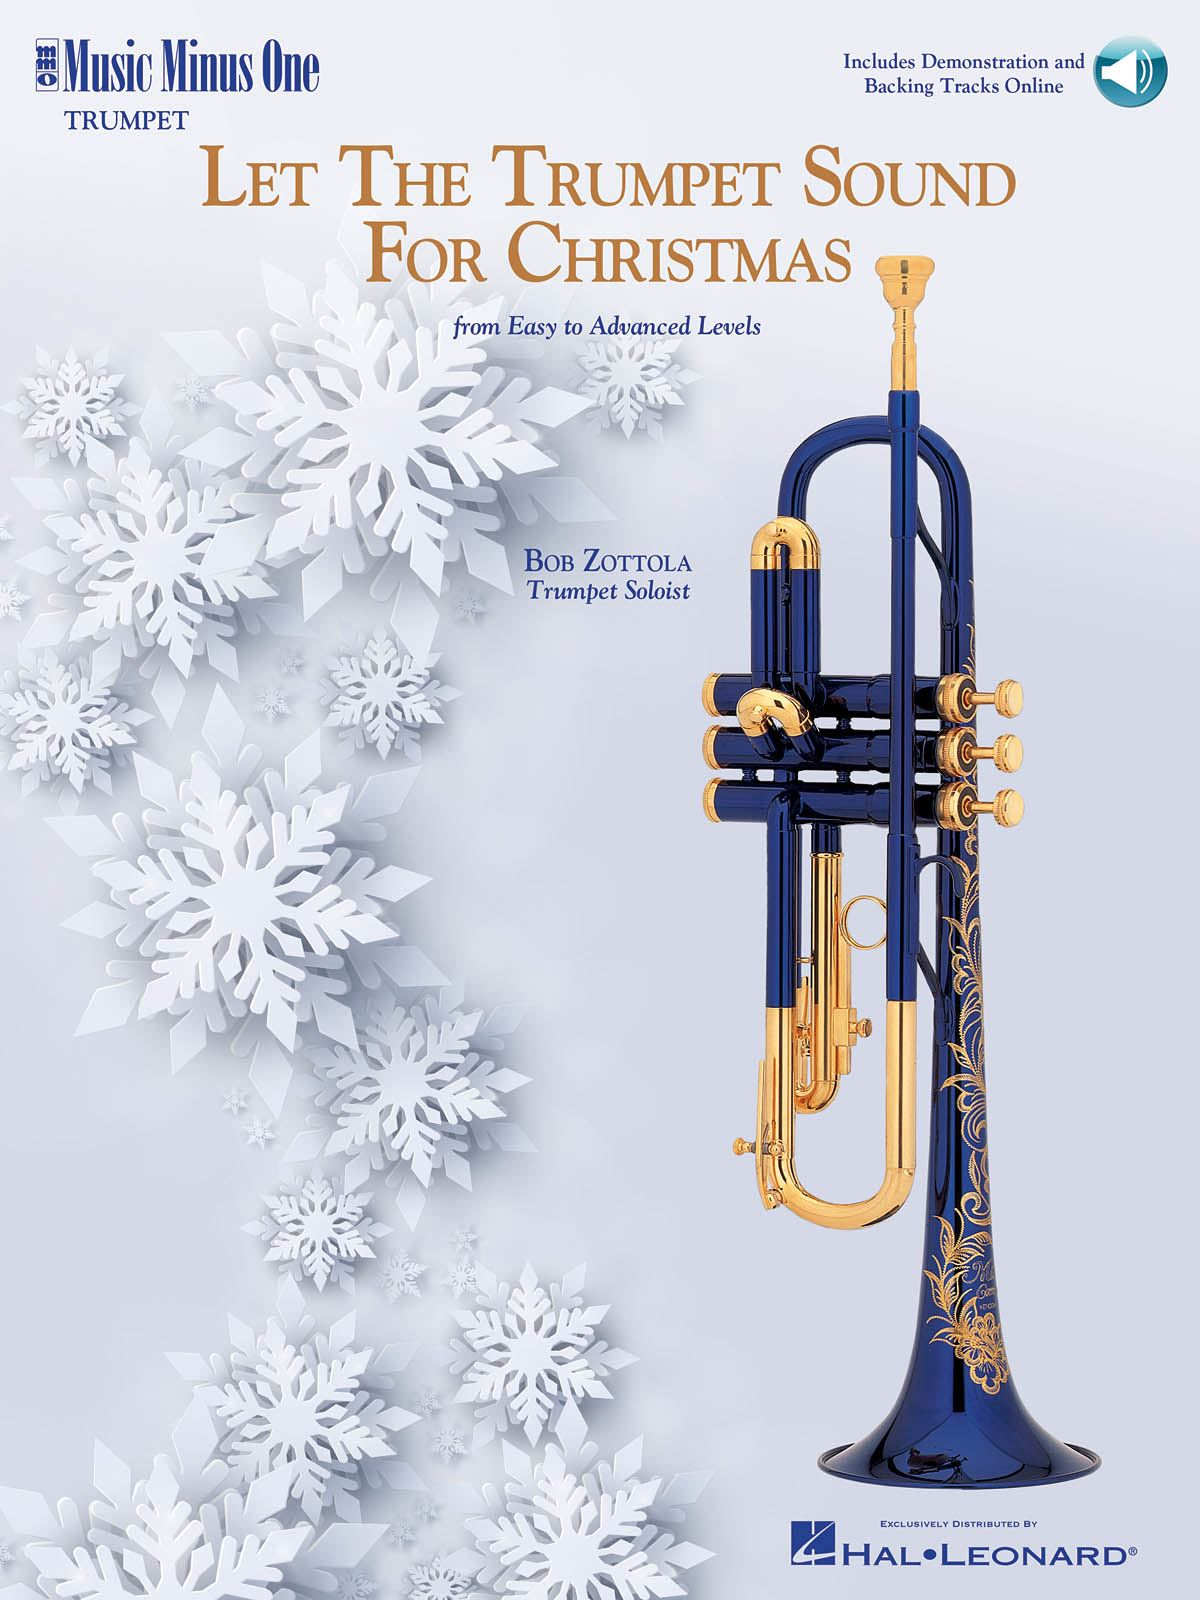 Let the Trumpet Sound for Christmas: Trumpet